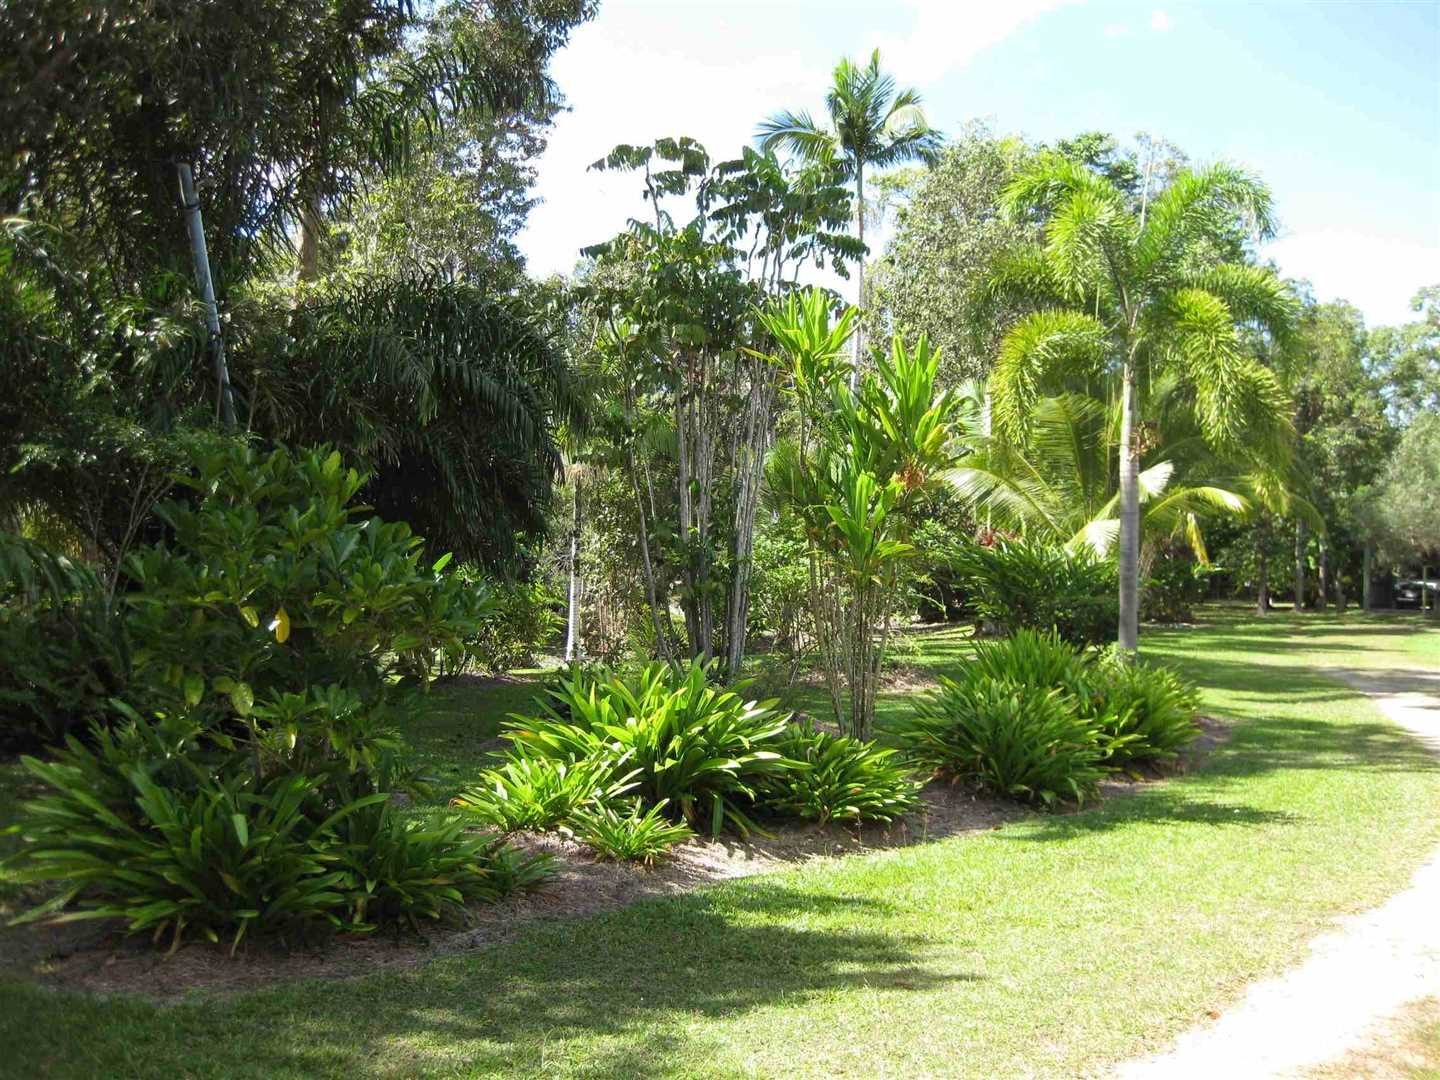 View of part of garden area, photo 2